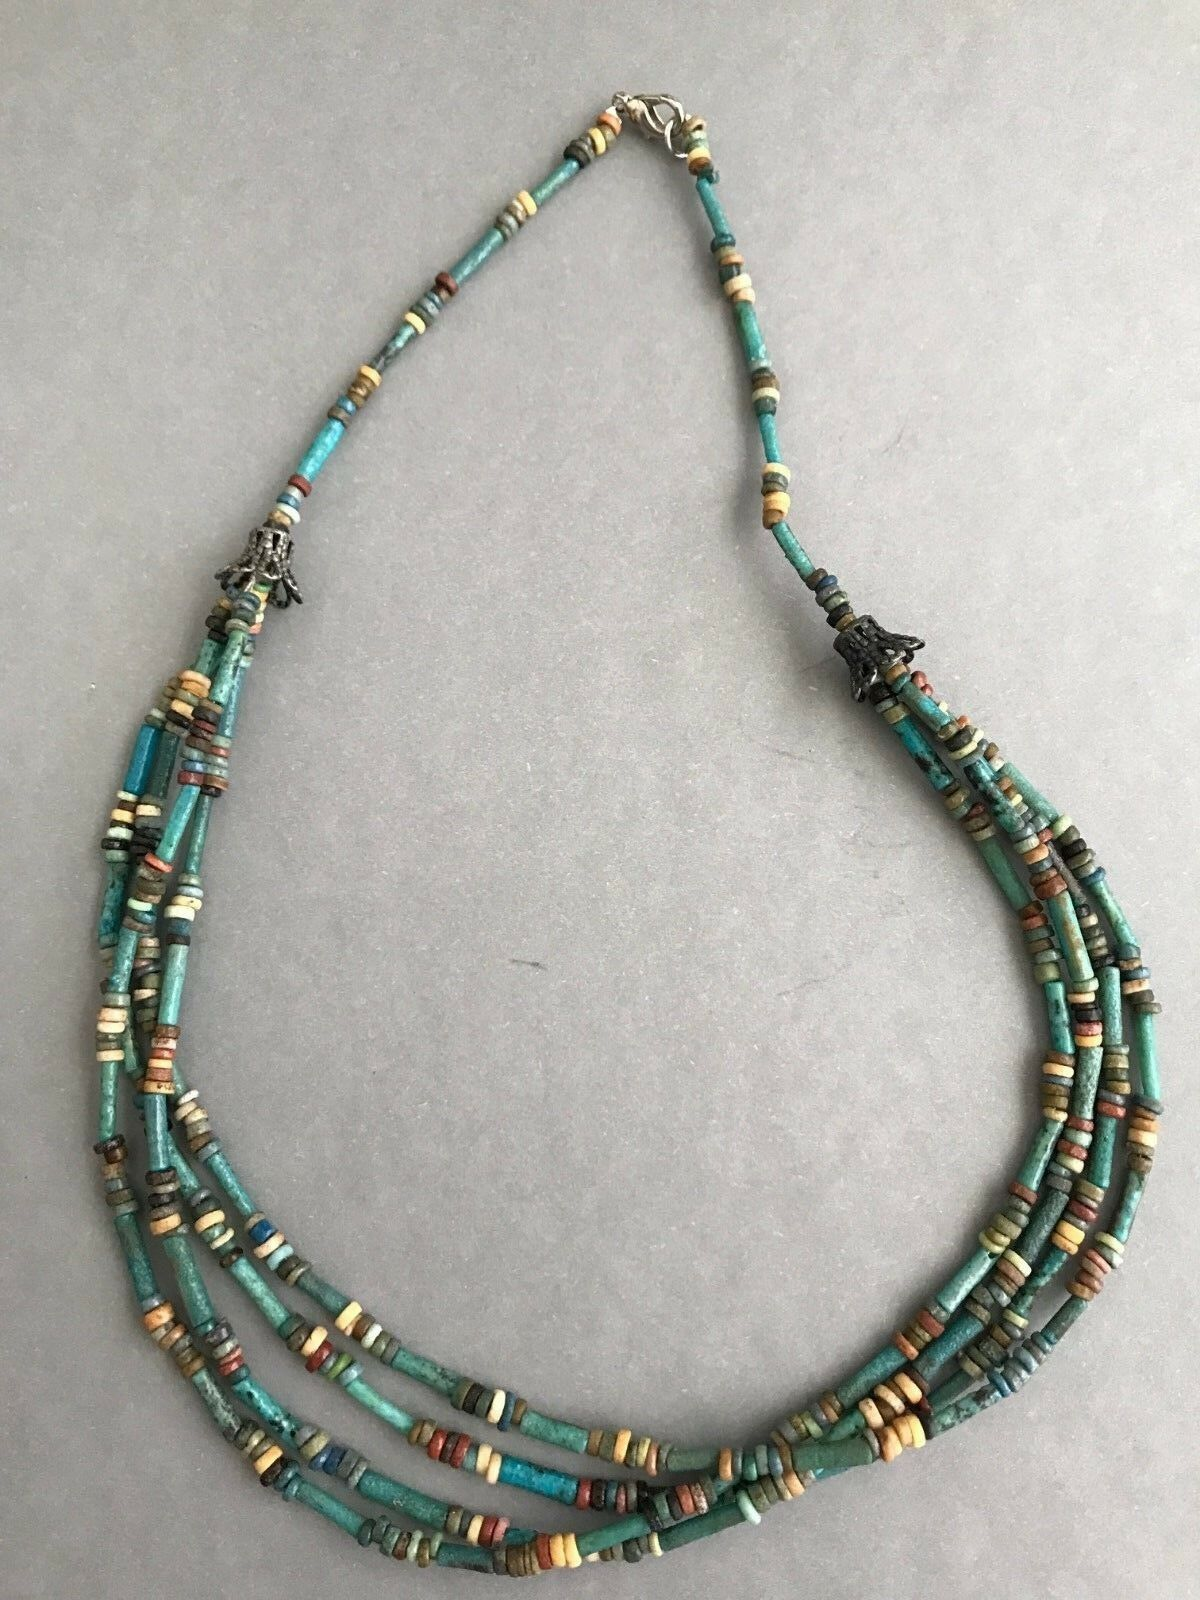 Ancient Egyptian Mummy Beads Necklace With Four Strands